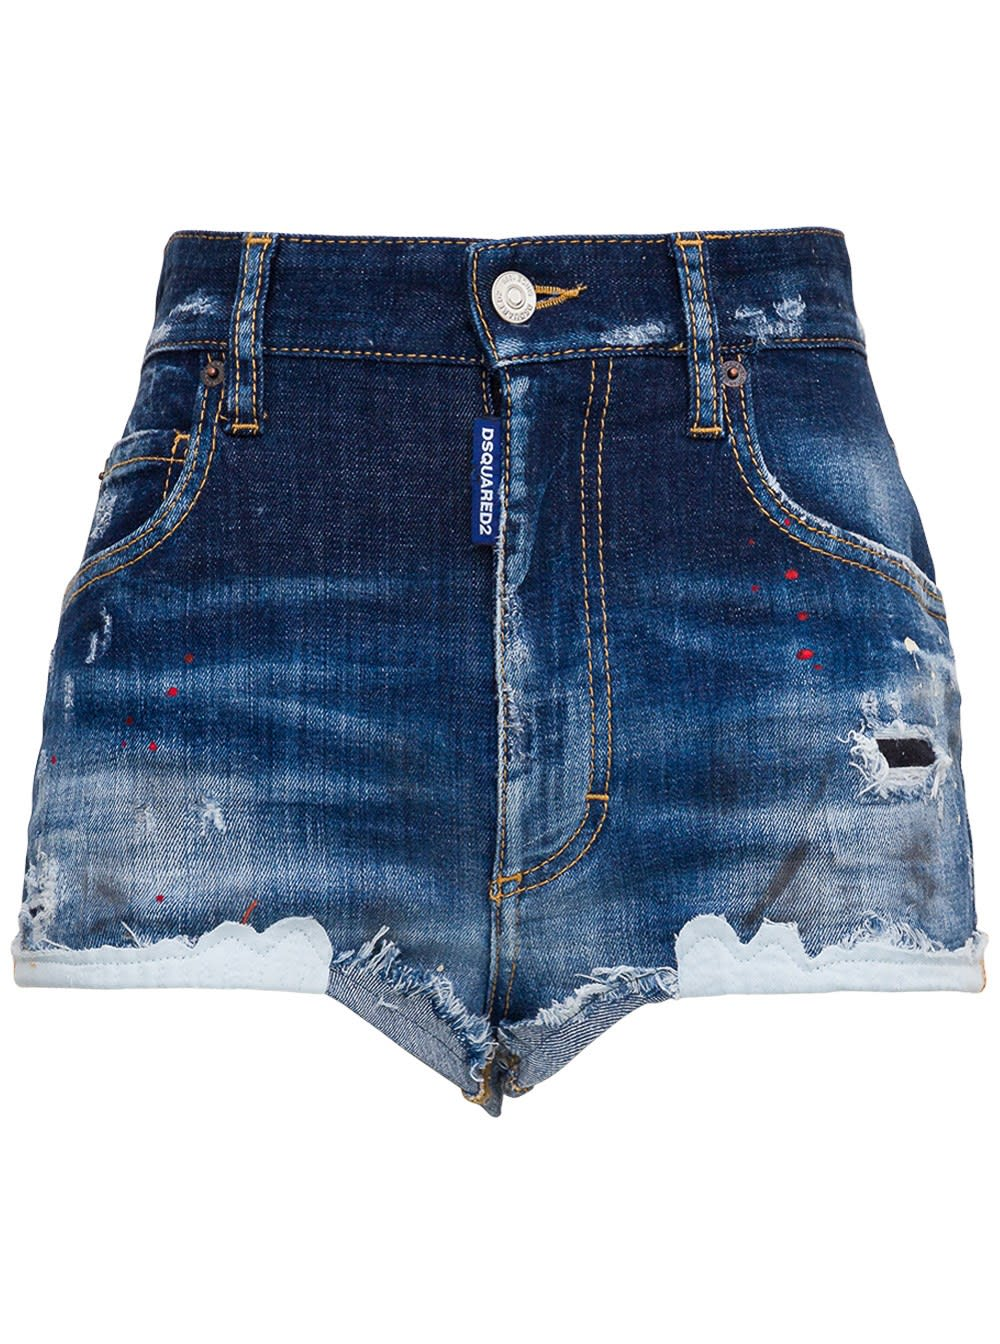 Dsquared2 DESTROYED SHORTS WITH PAINTED DETAILS